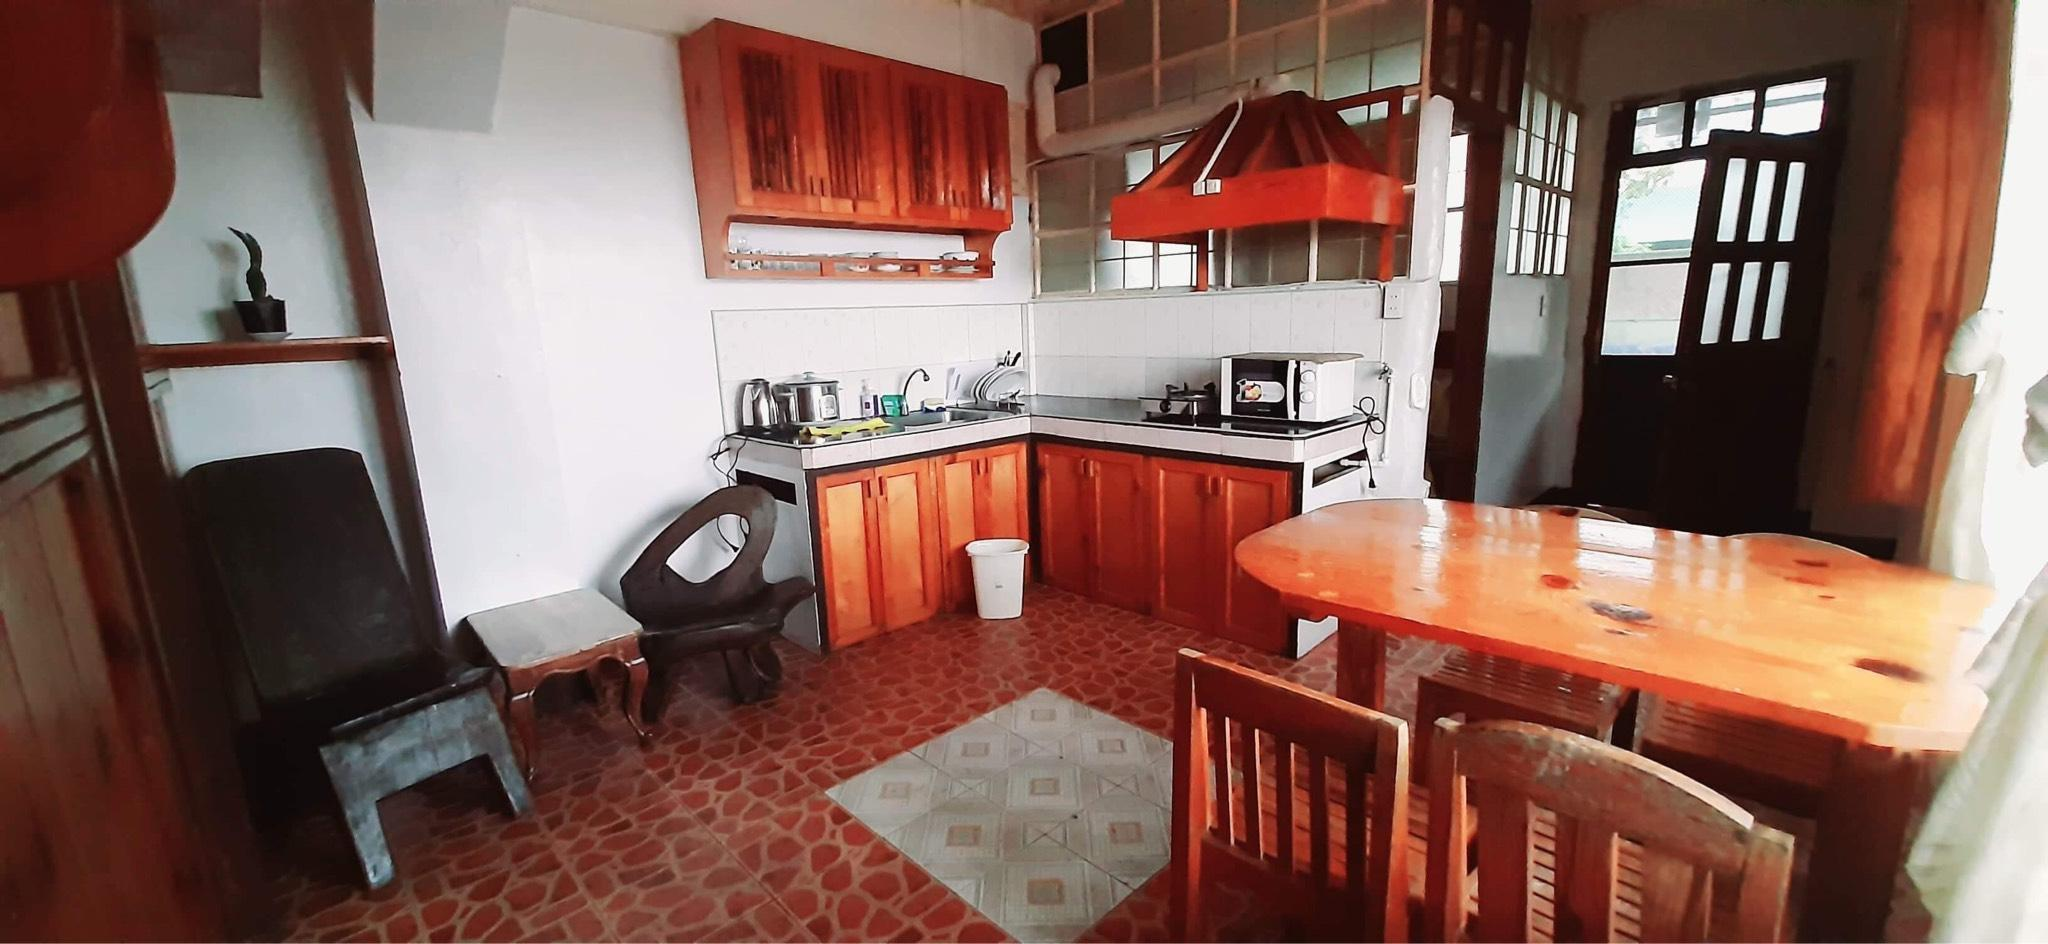 3House Vacation Home 1A